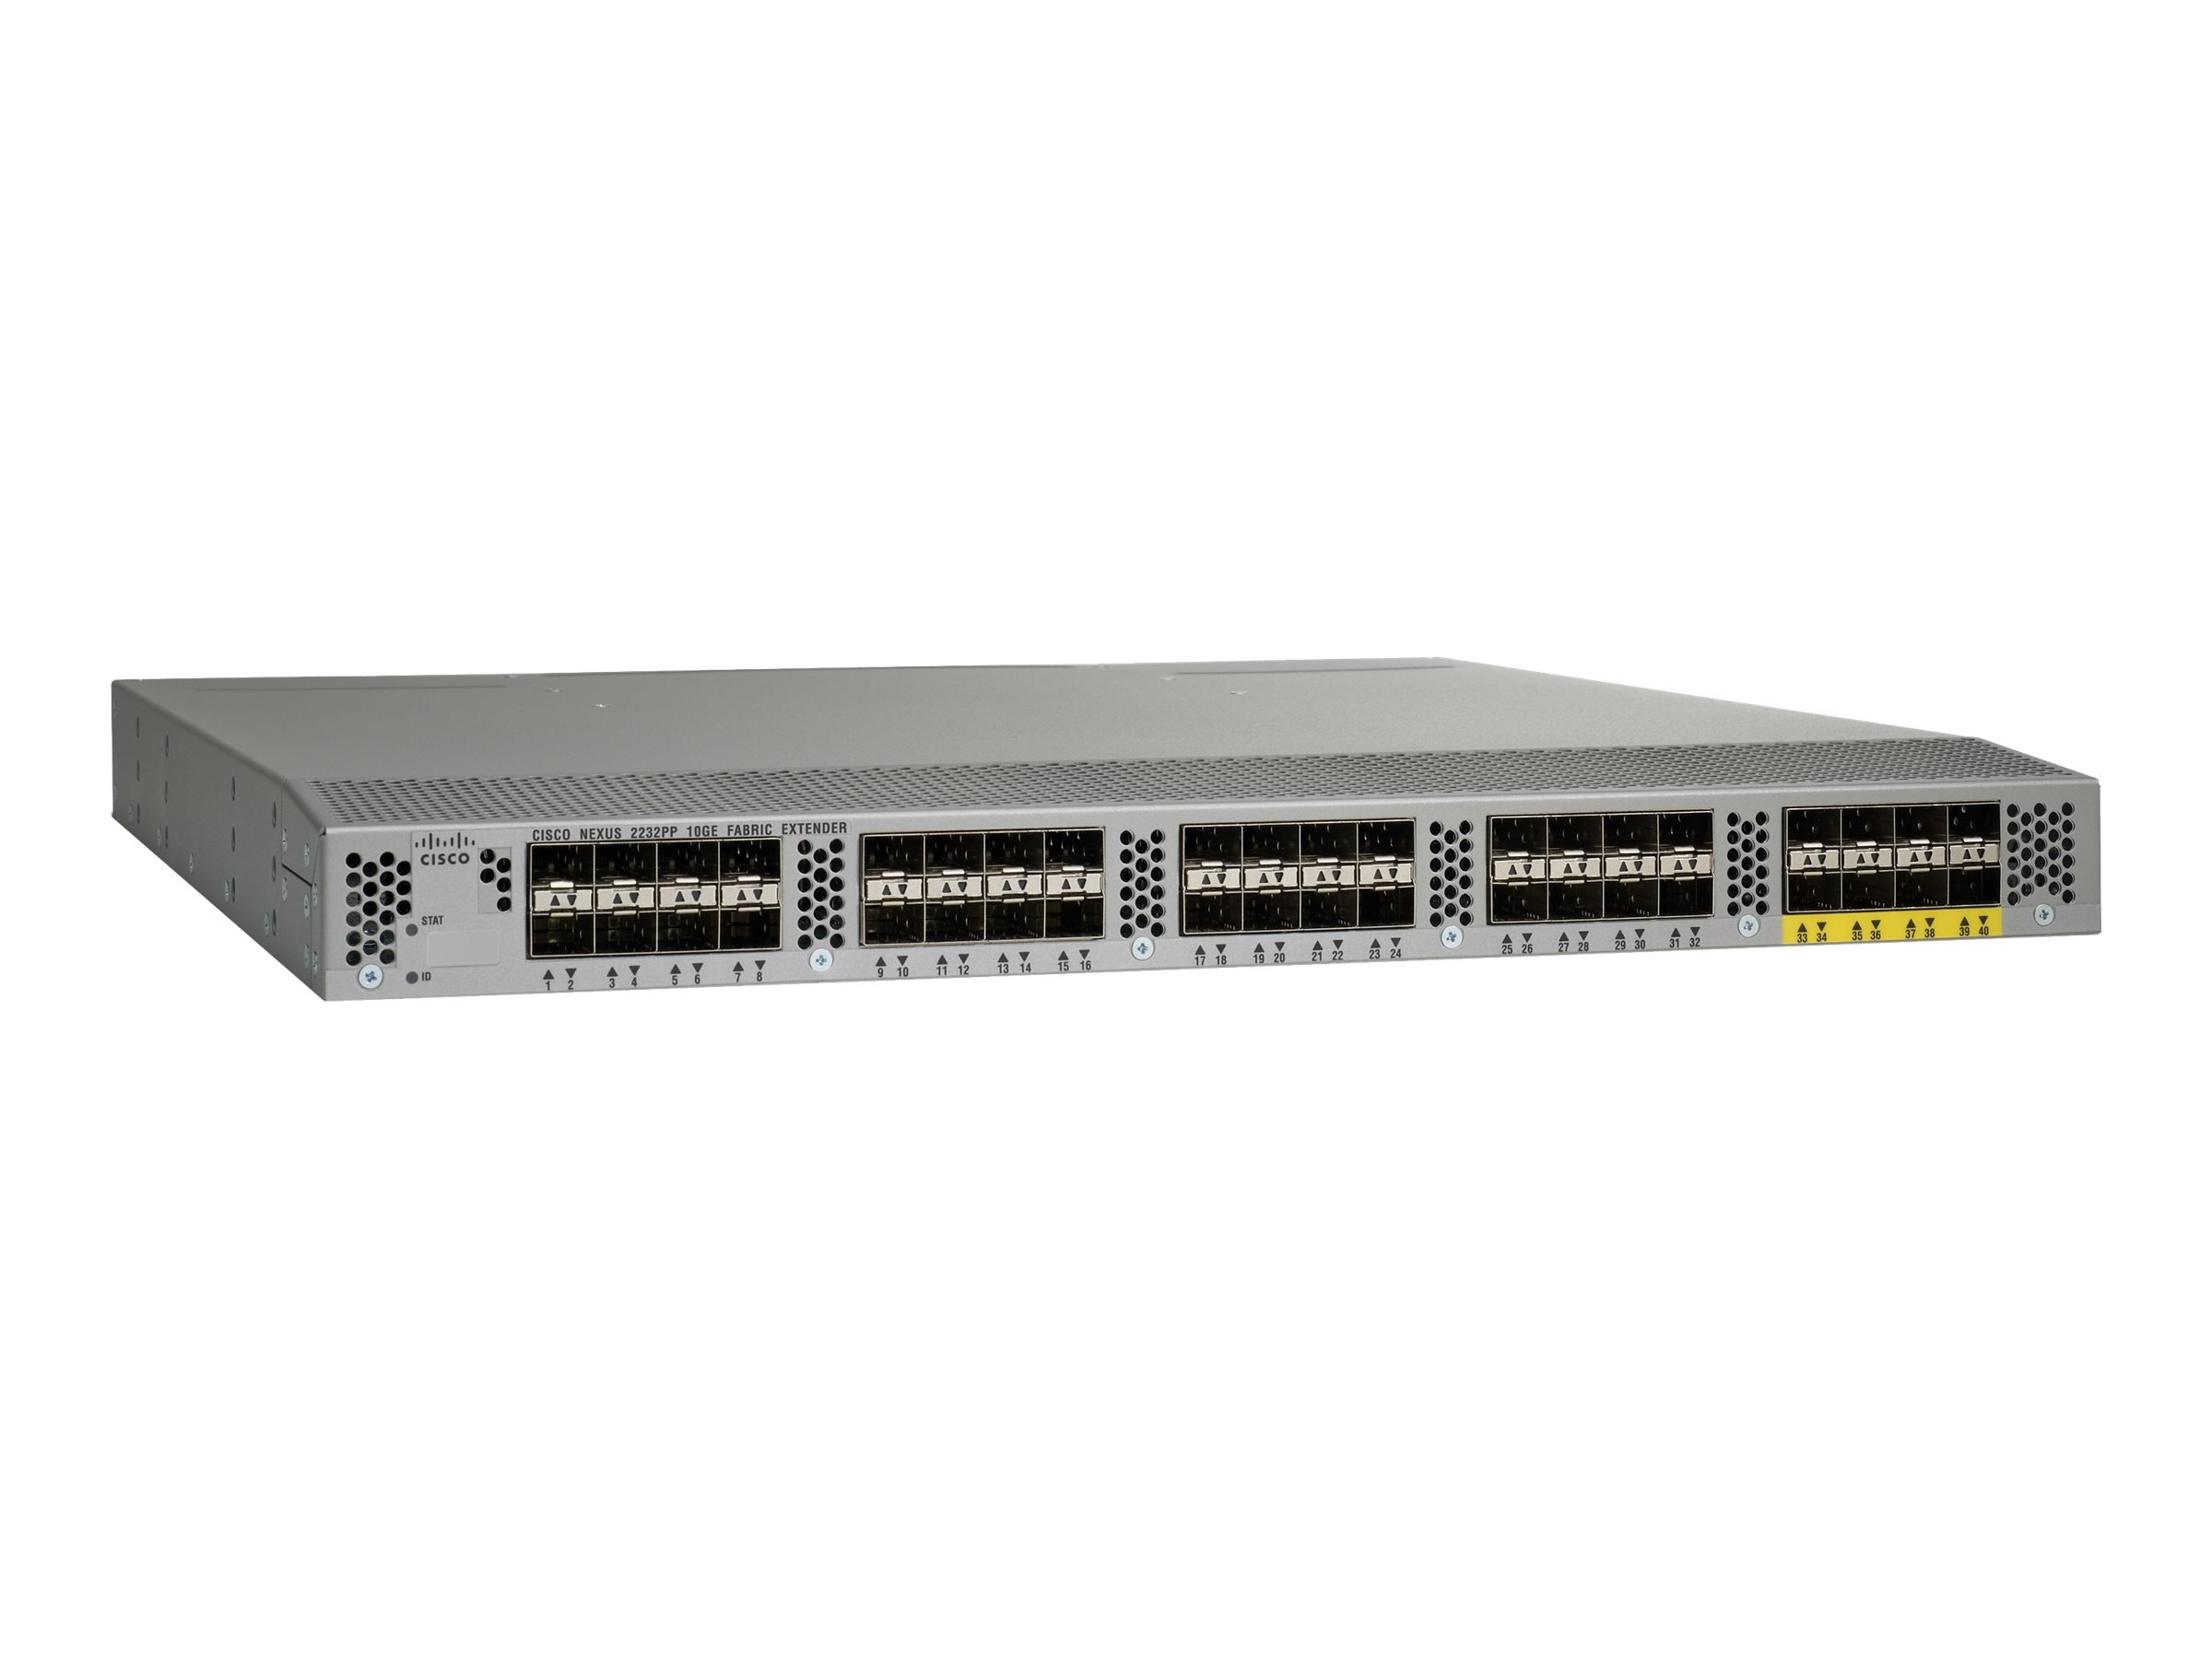 Cisco N2k Power Airflow Packaged Options